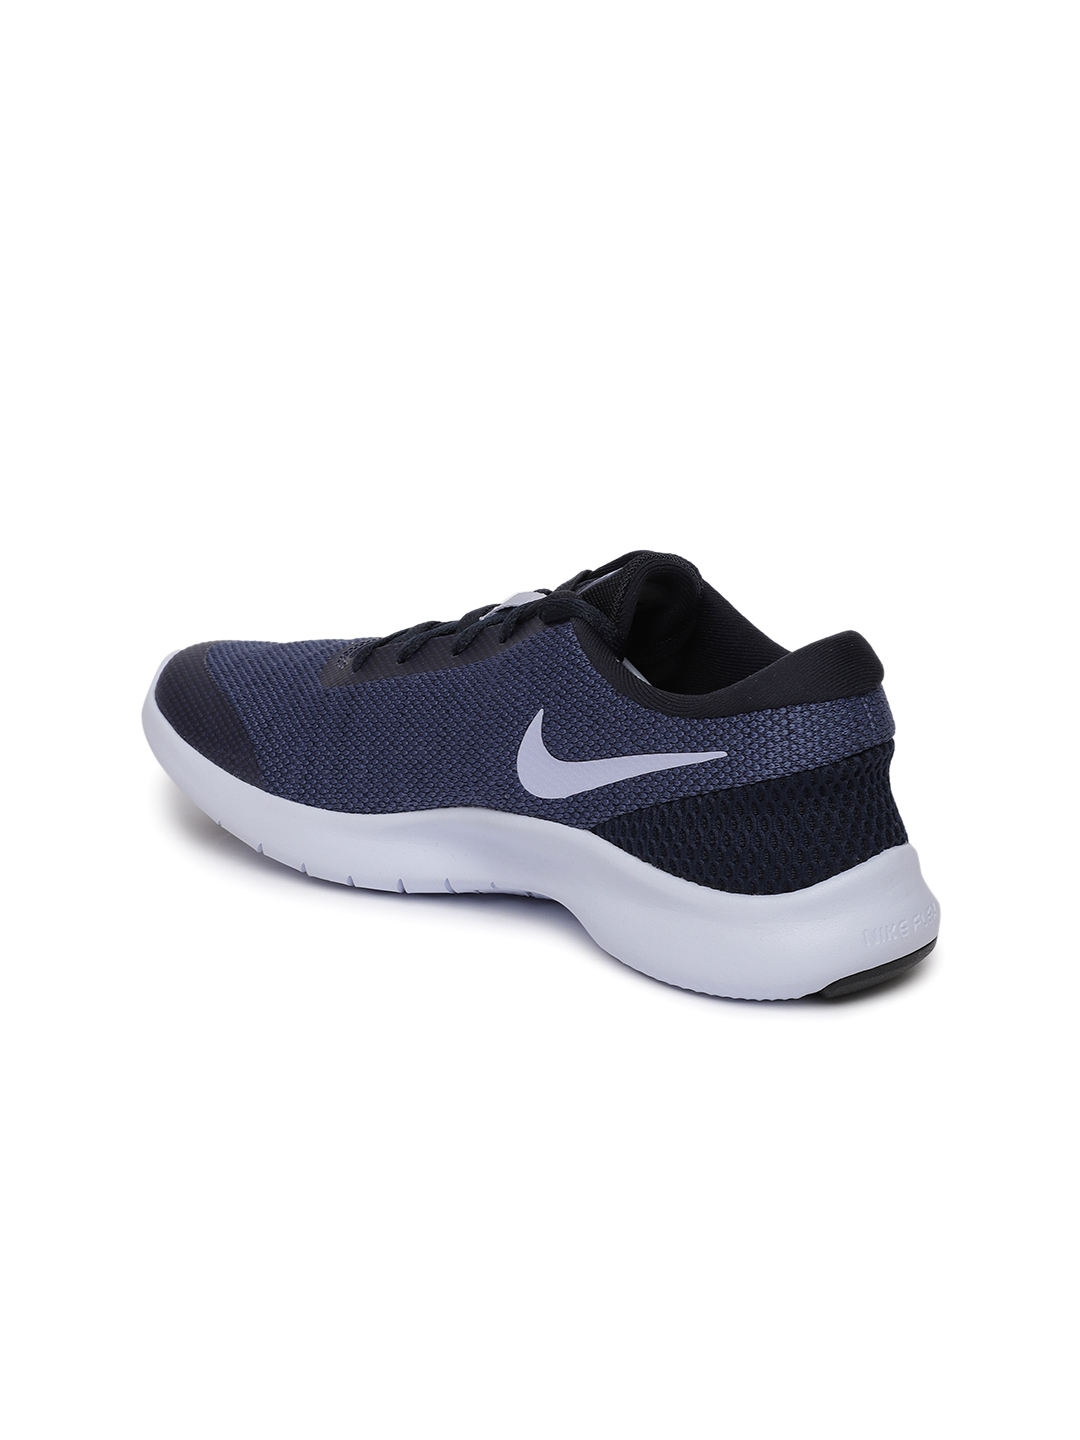 d99eee6b6fa7 Buy Nike Women Blue Flex Experience RN 7 Running Shoes - Sports ...